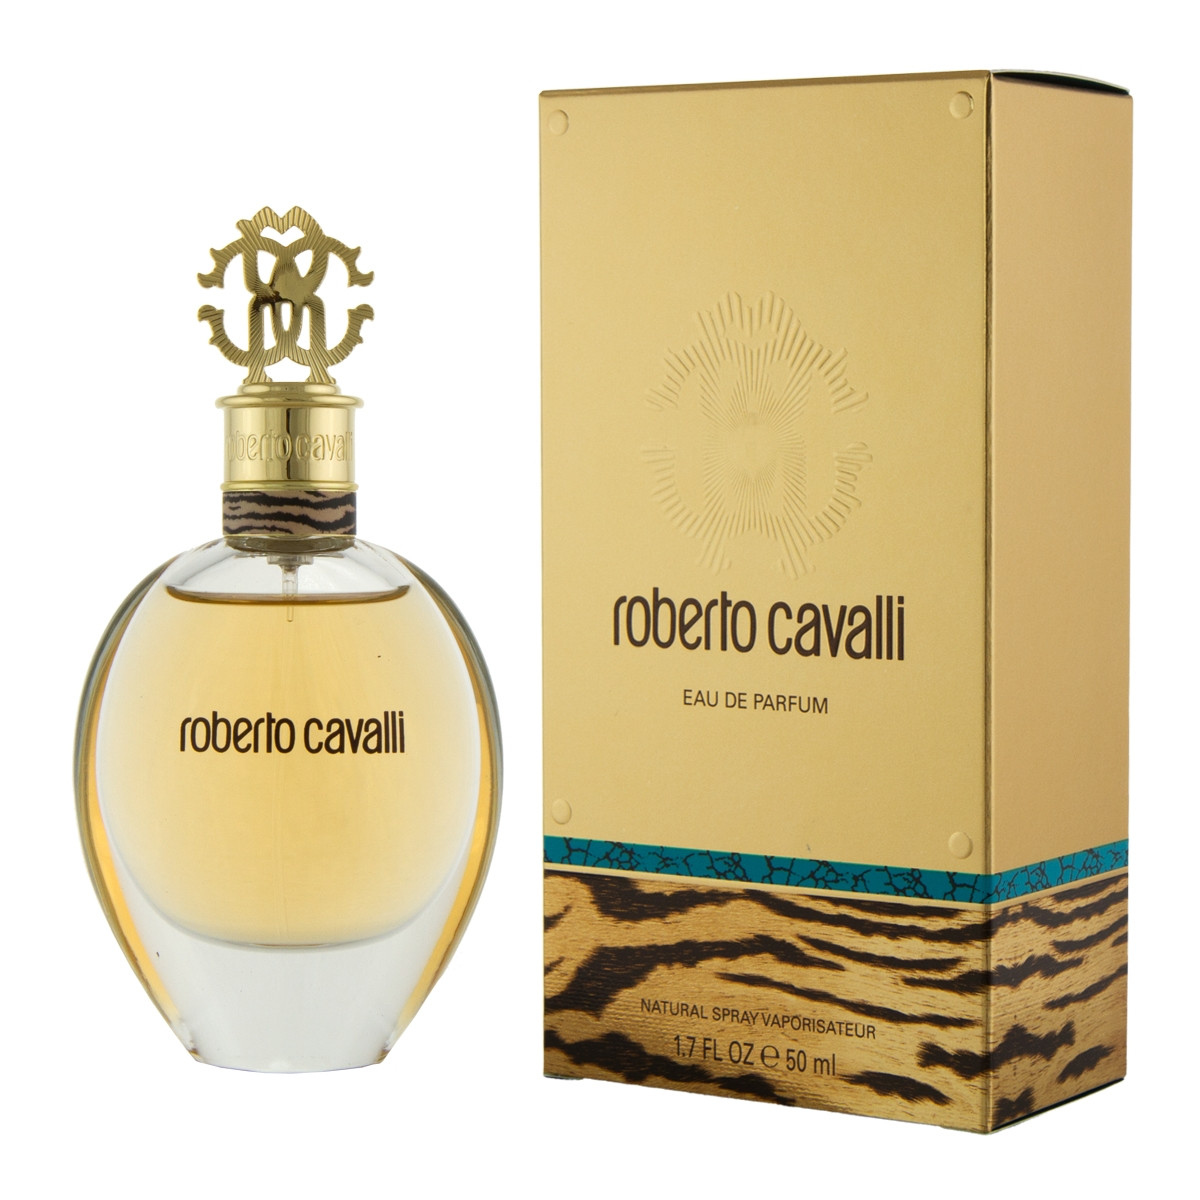 roberto cavalli roberto cavalli eau de parfum eau de parfum 50 ml woman roberto cavalli eau. Black Bedroom Furniture Sets. Home Design Ideas